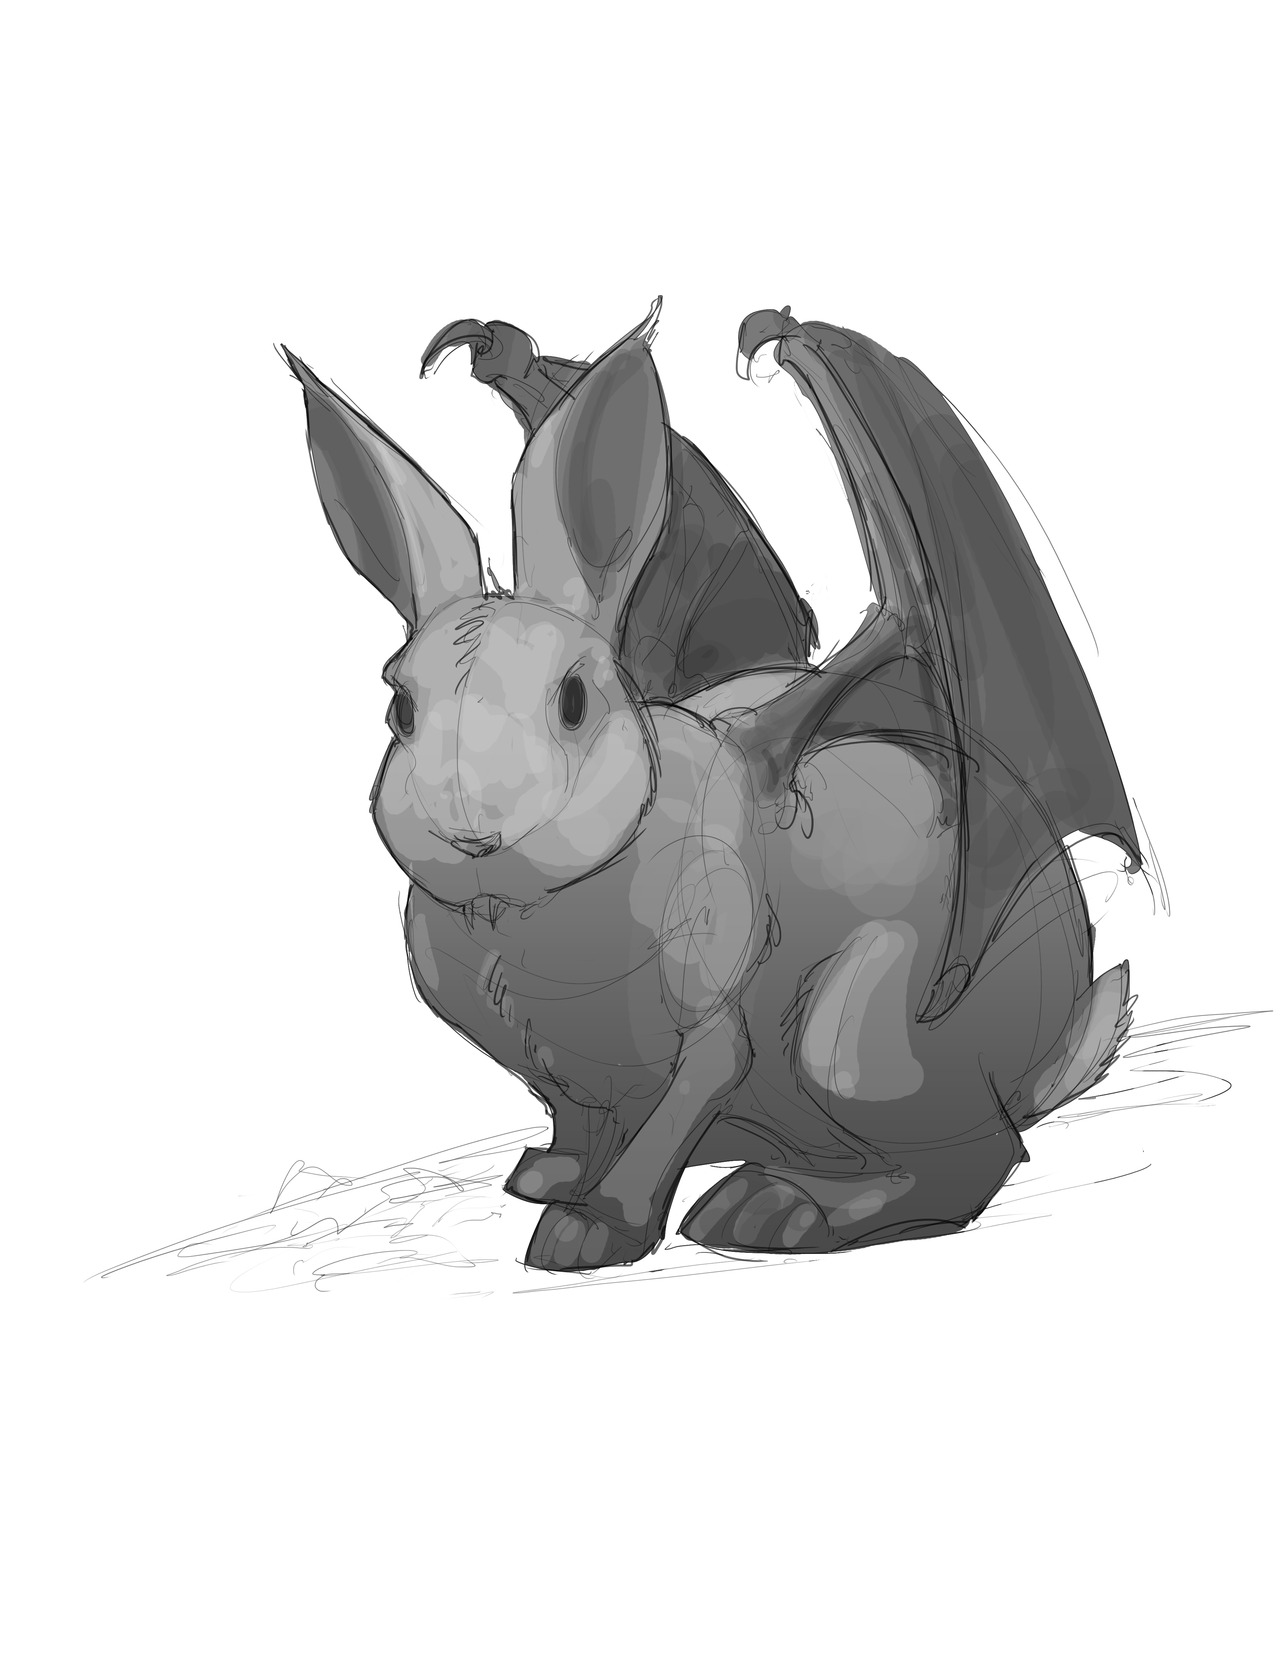 Flying vampire bunny familiars anyone?   Go get your copy today!   Layout sketch of just one of the many creatures in the new book!